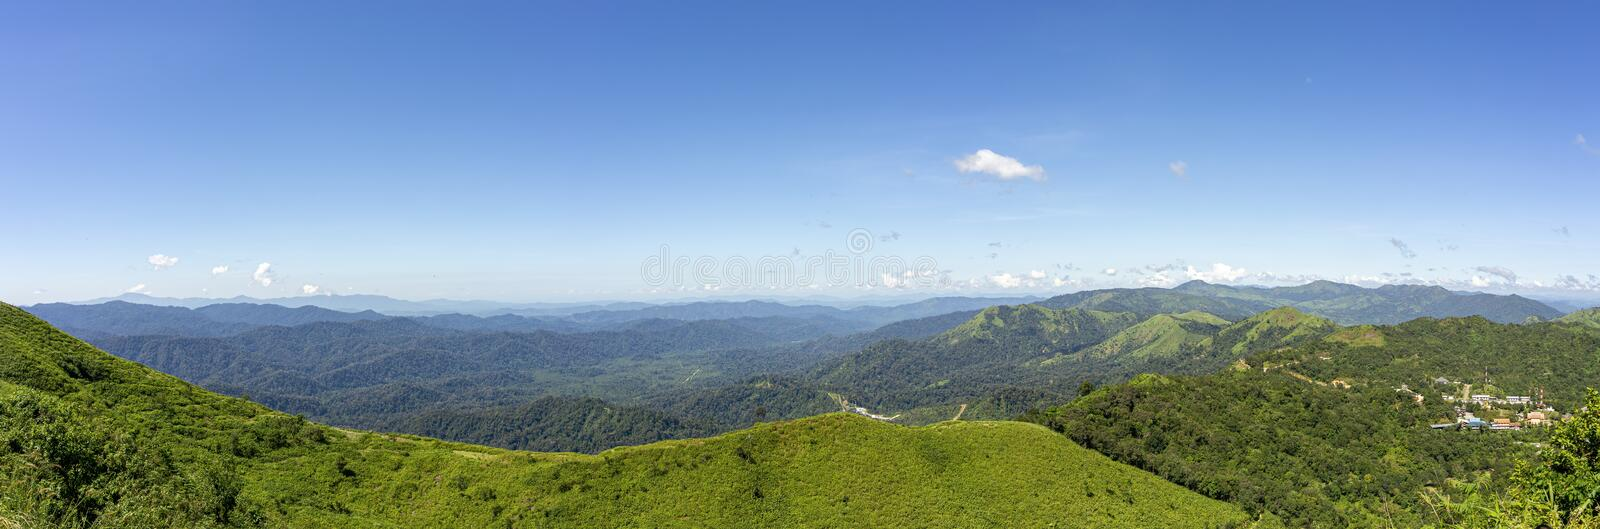 Panorama, The scenery on the afternoon viewpoint. Mountains complex, Clear blue sky. Pilok Mine Viewpoint, Kanchanaburi, Thailand.  stock images